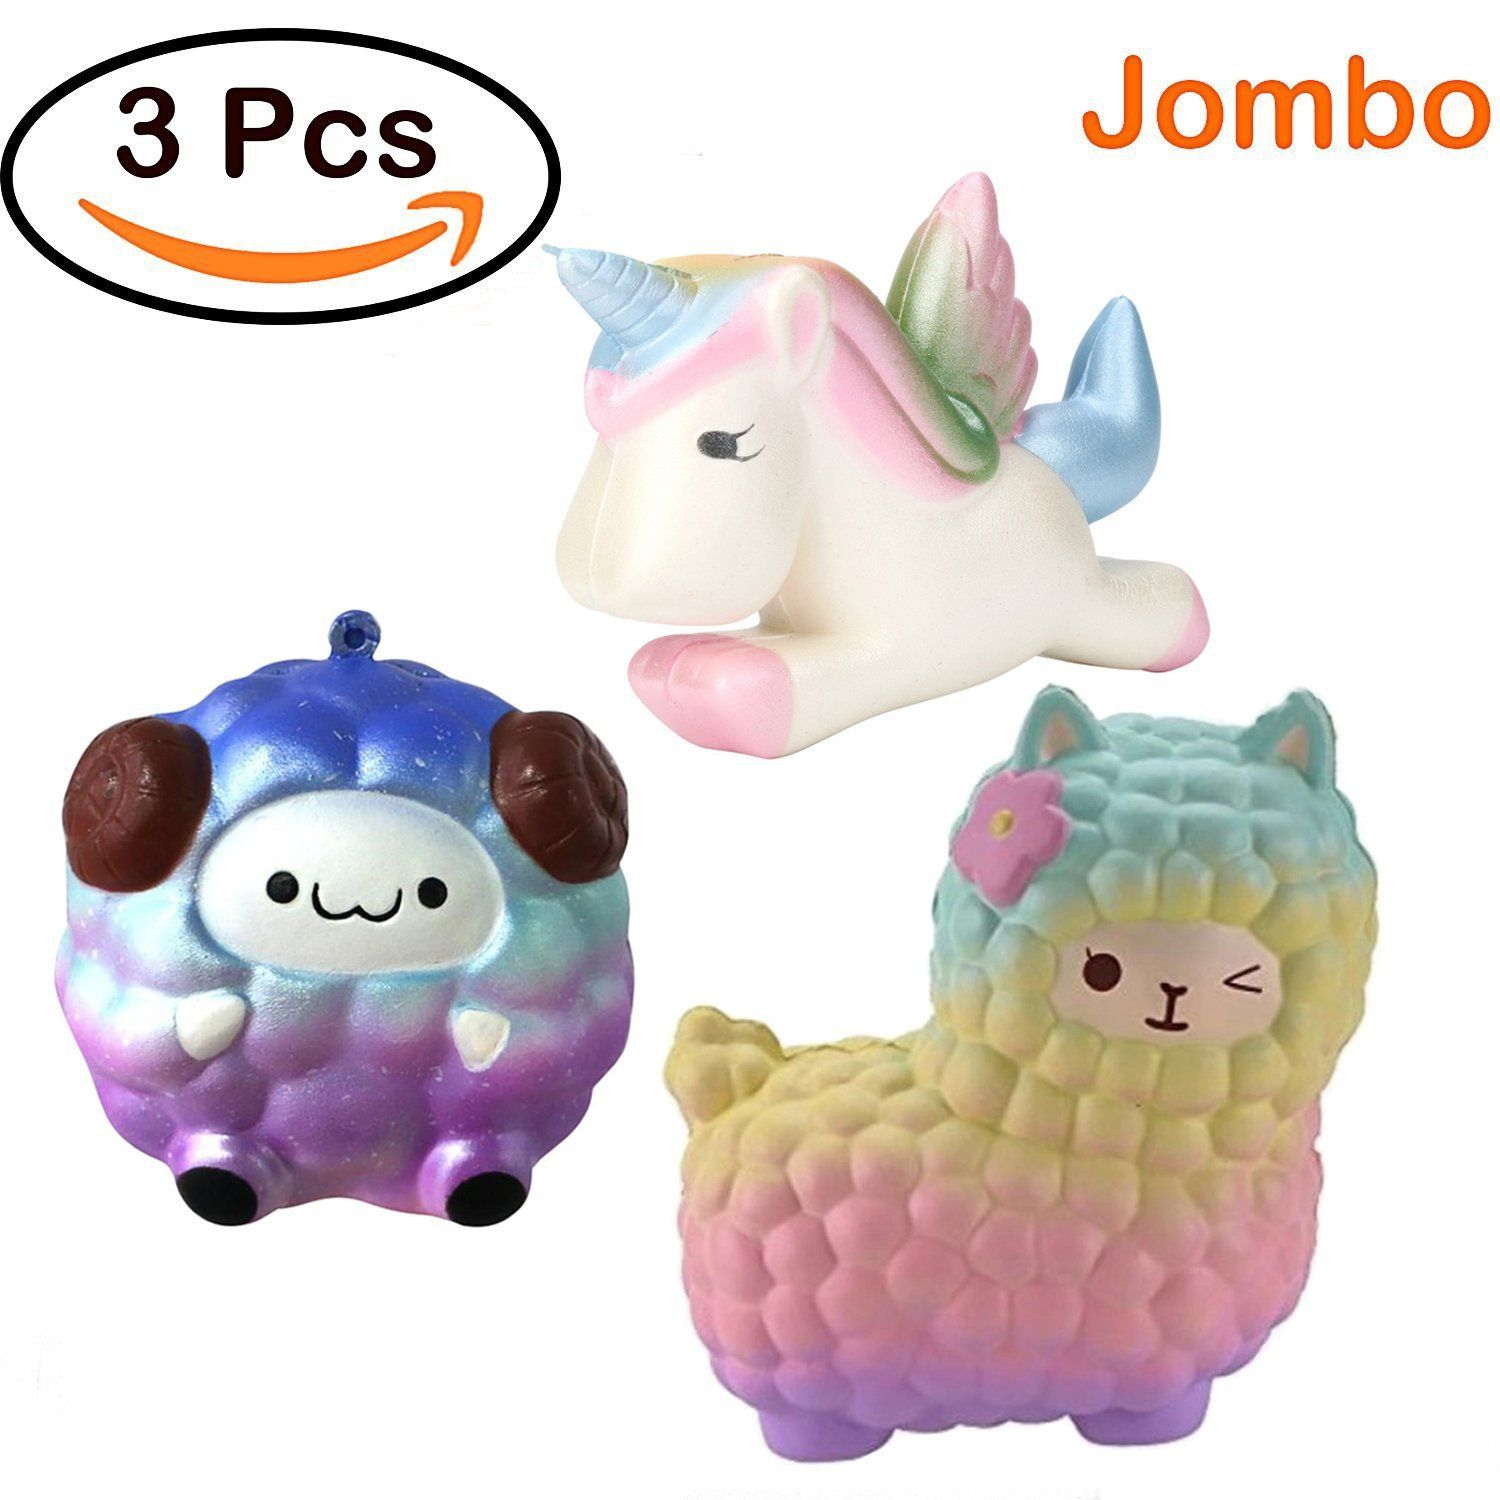 Toys & Hobbies Stress Relief Toy Enthusiastic Simulation Delicate Cake Slow Rising Scented Squeeze Relieve Stress Toy Squishy Chocolate Smooshy Mushy Squish Stress Relief